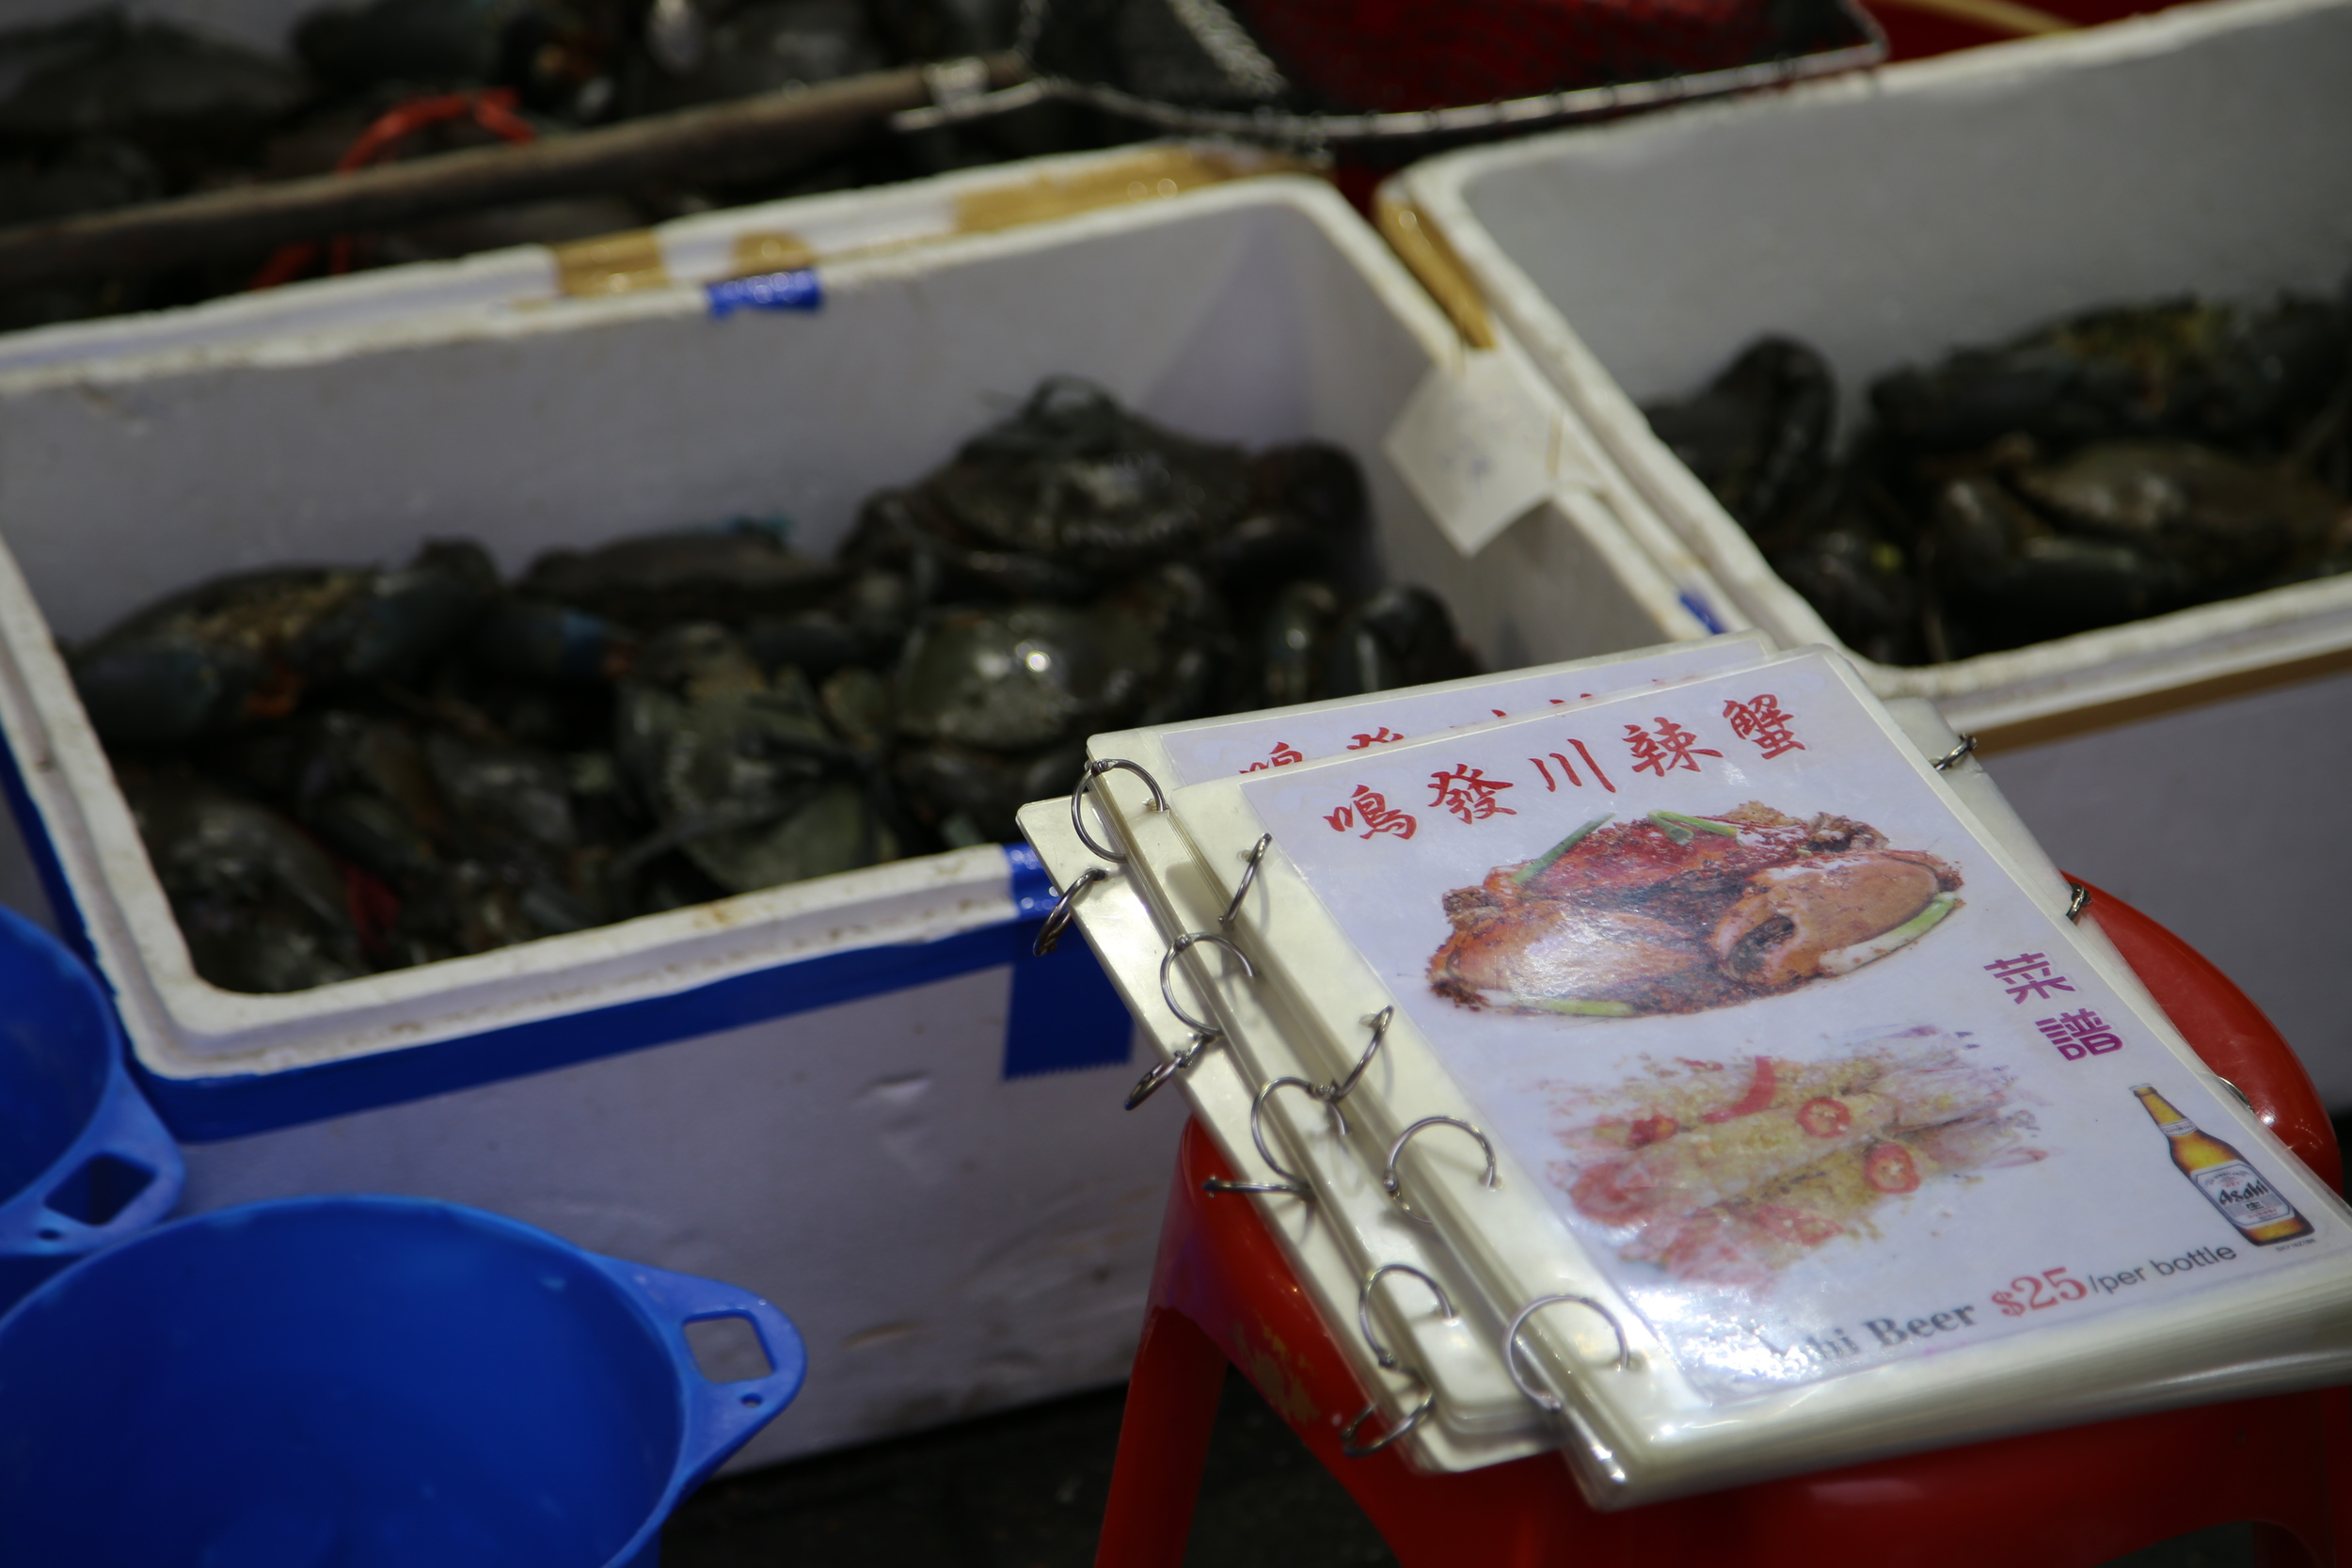 At the  Temple Street Night Market, you can pick your live seafood and they will cook it for you to eat.